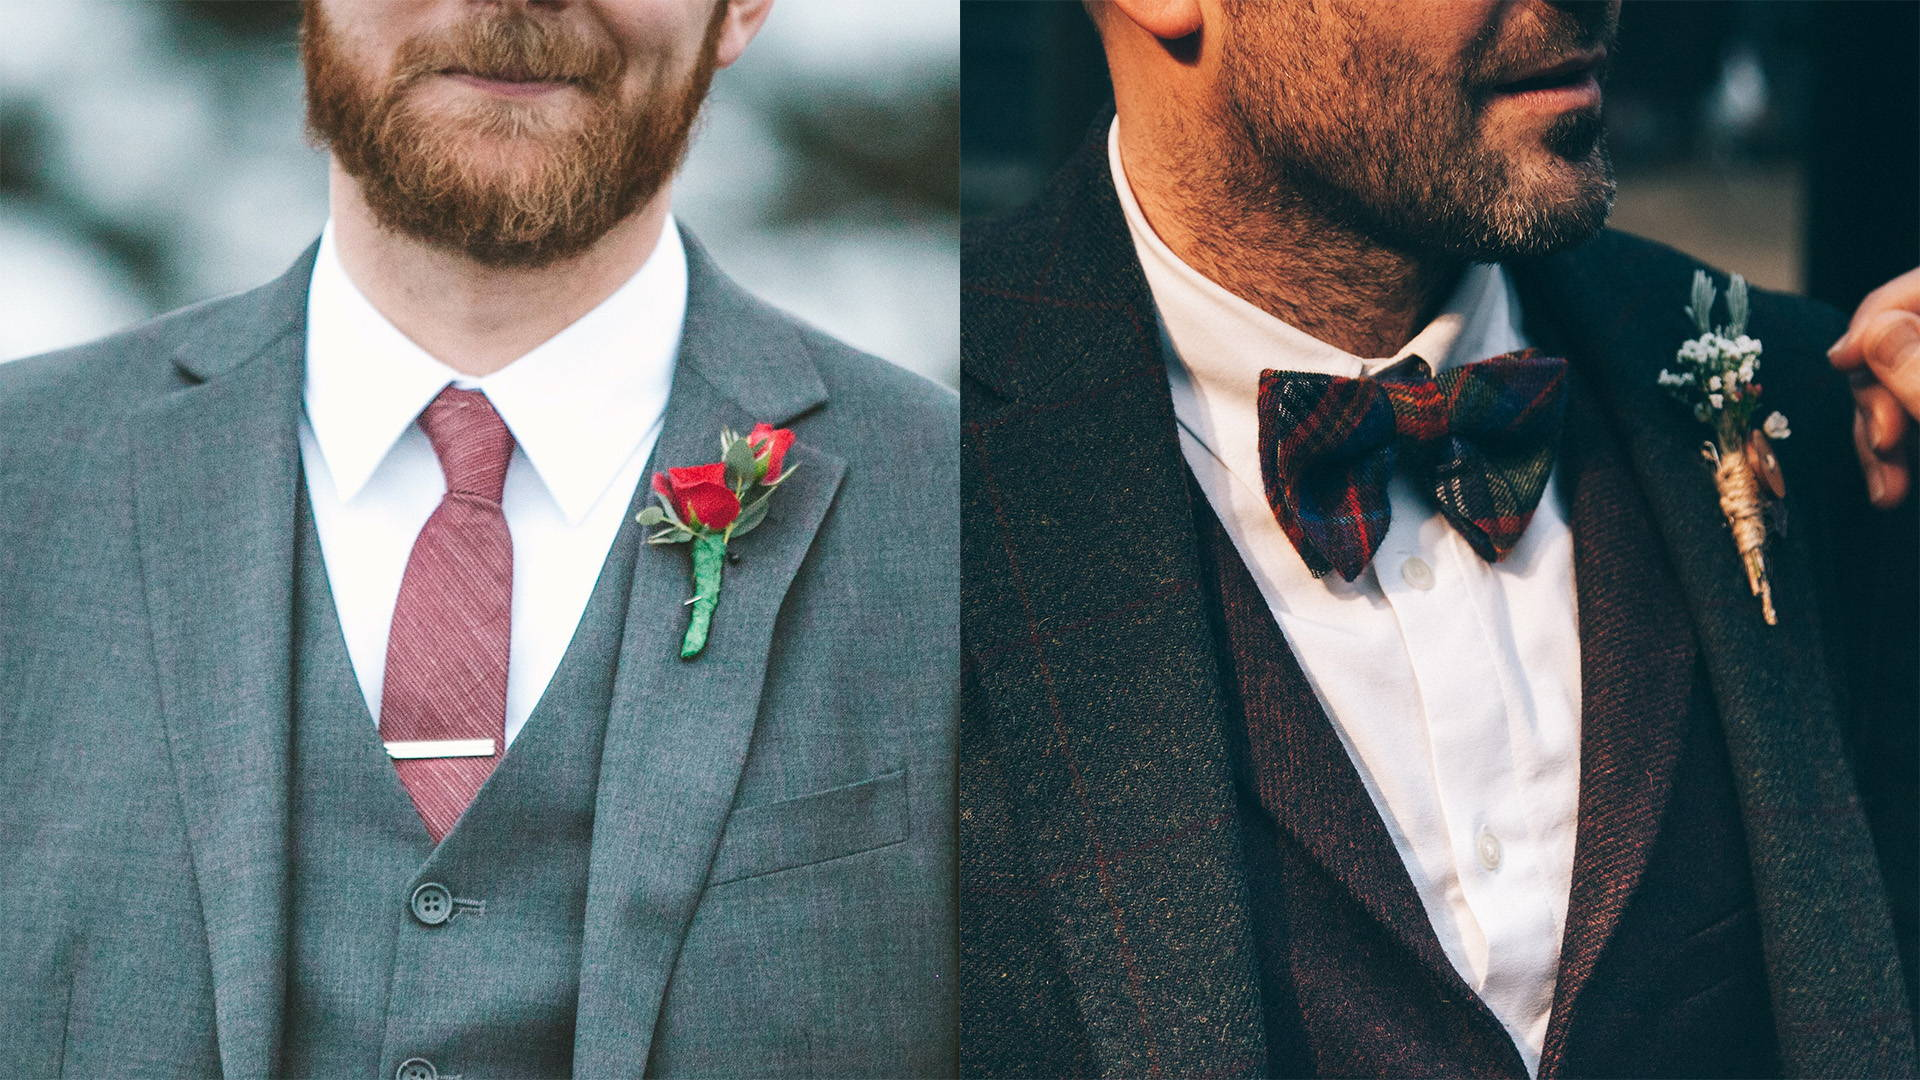 Tie vs Bow Tie: Which Should a Groom Wear